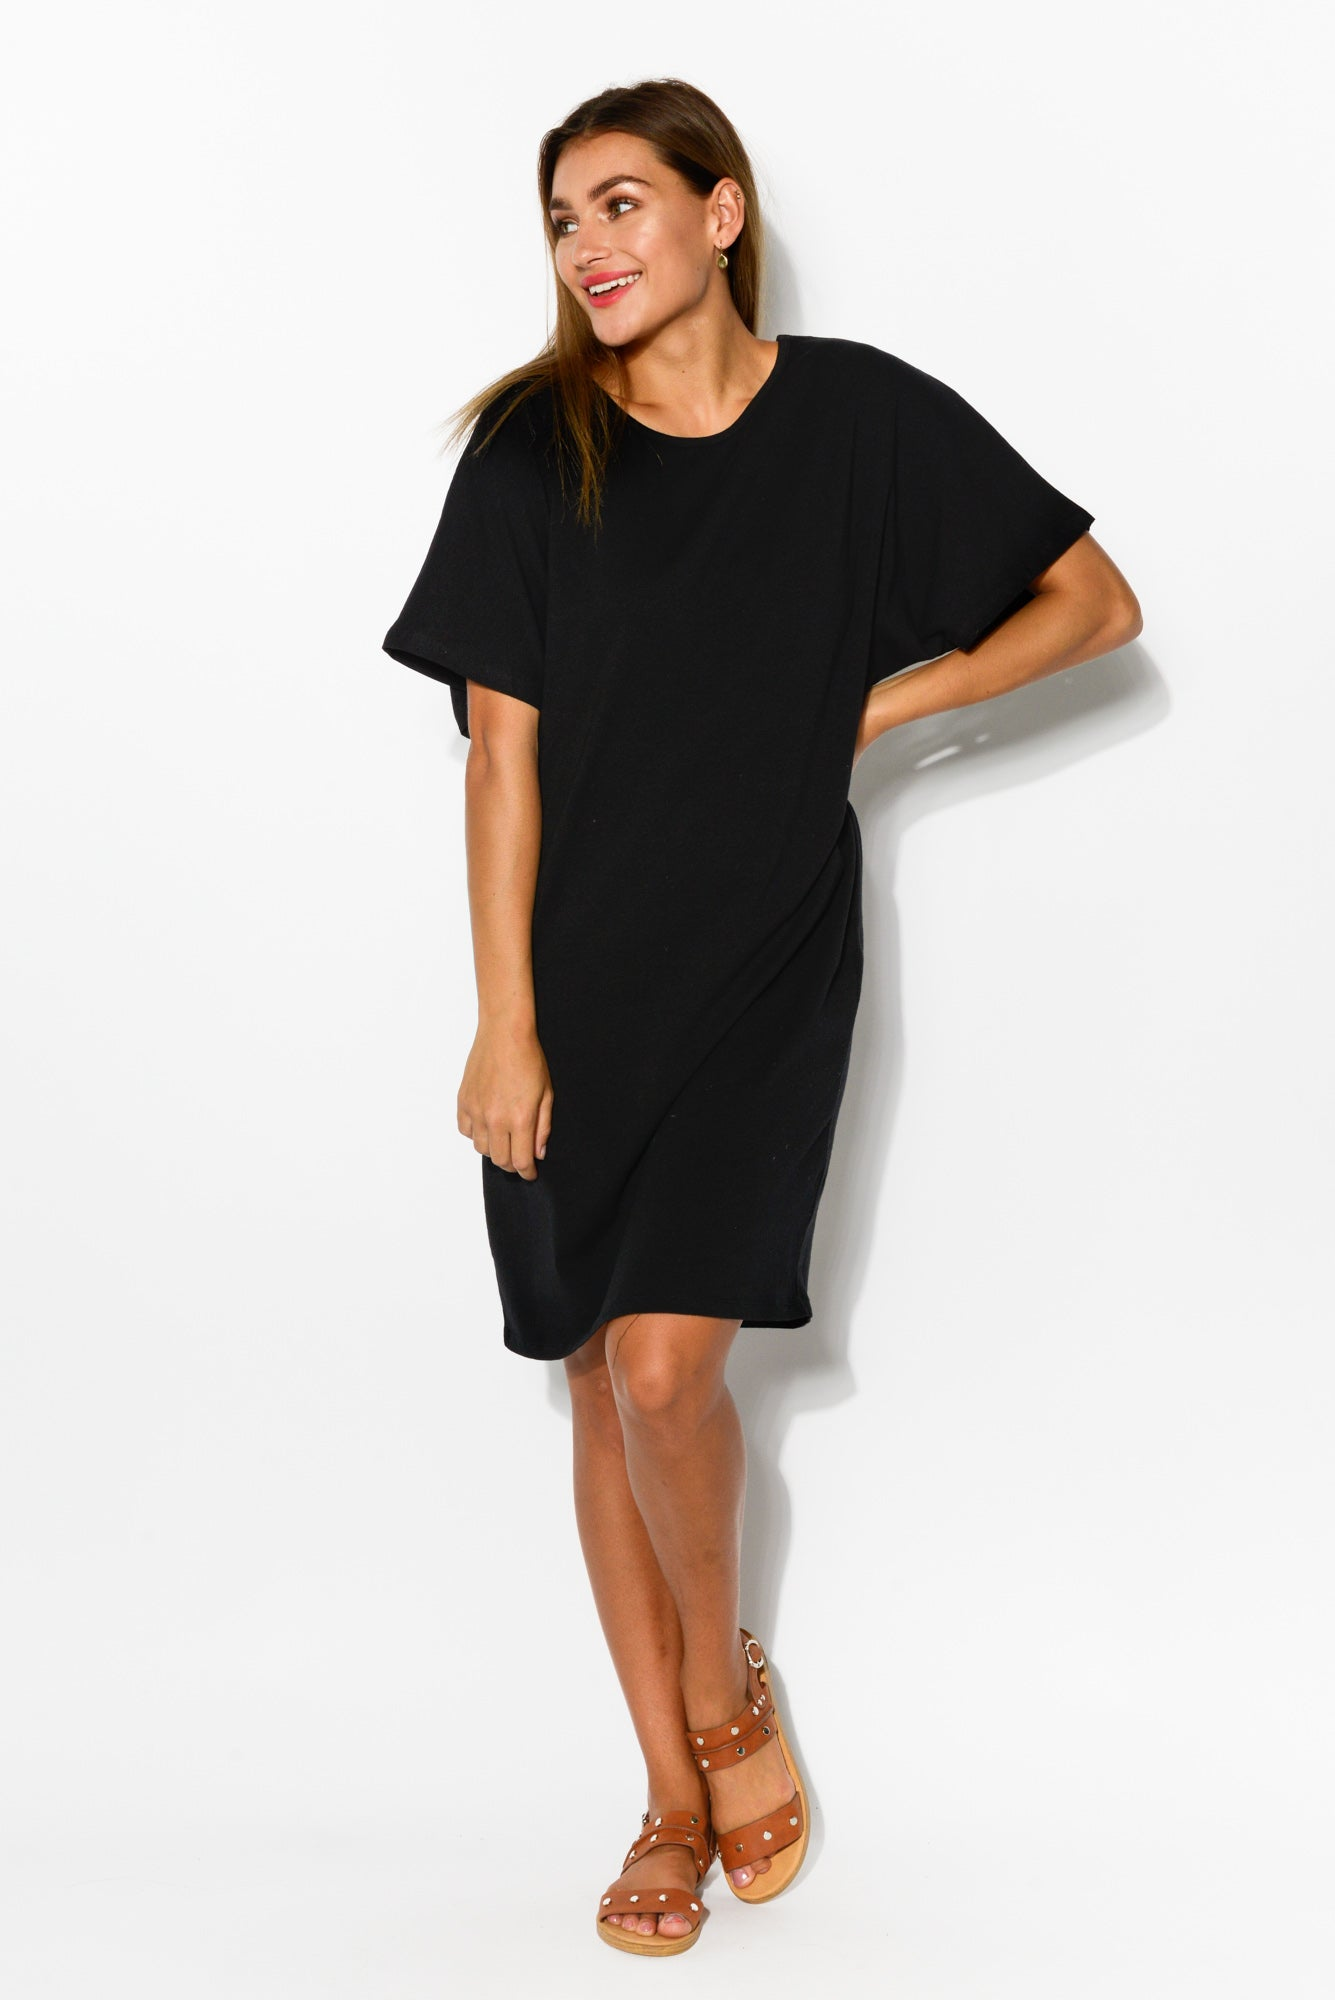 Dorothy Black Drape Tee Dress - Blue Bungalow